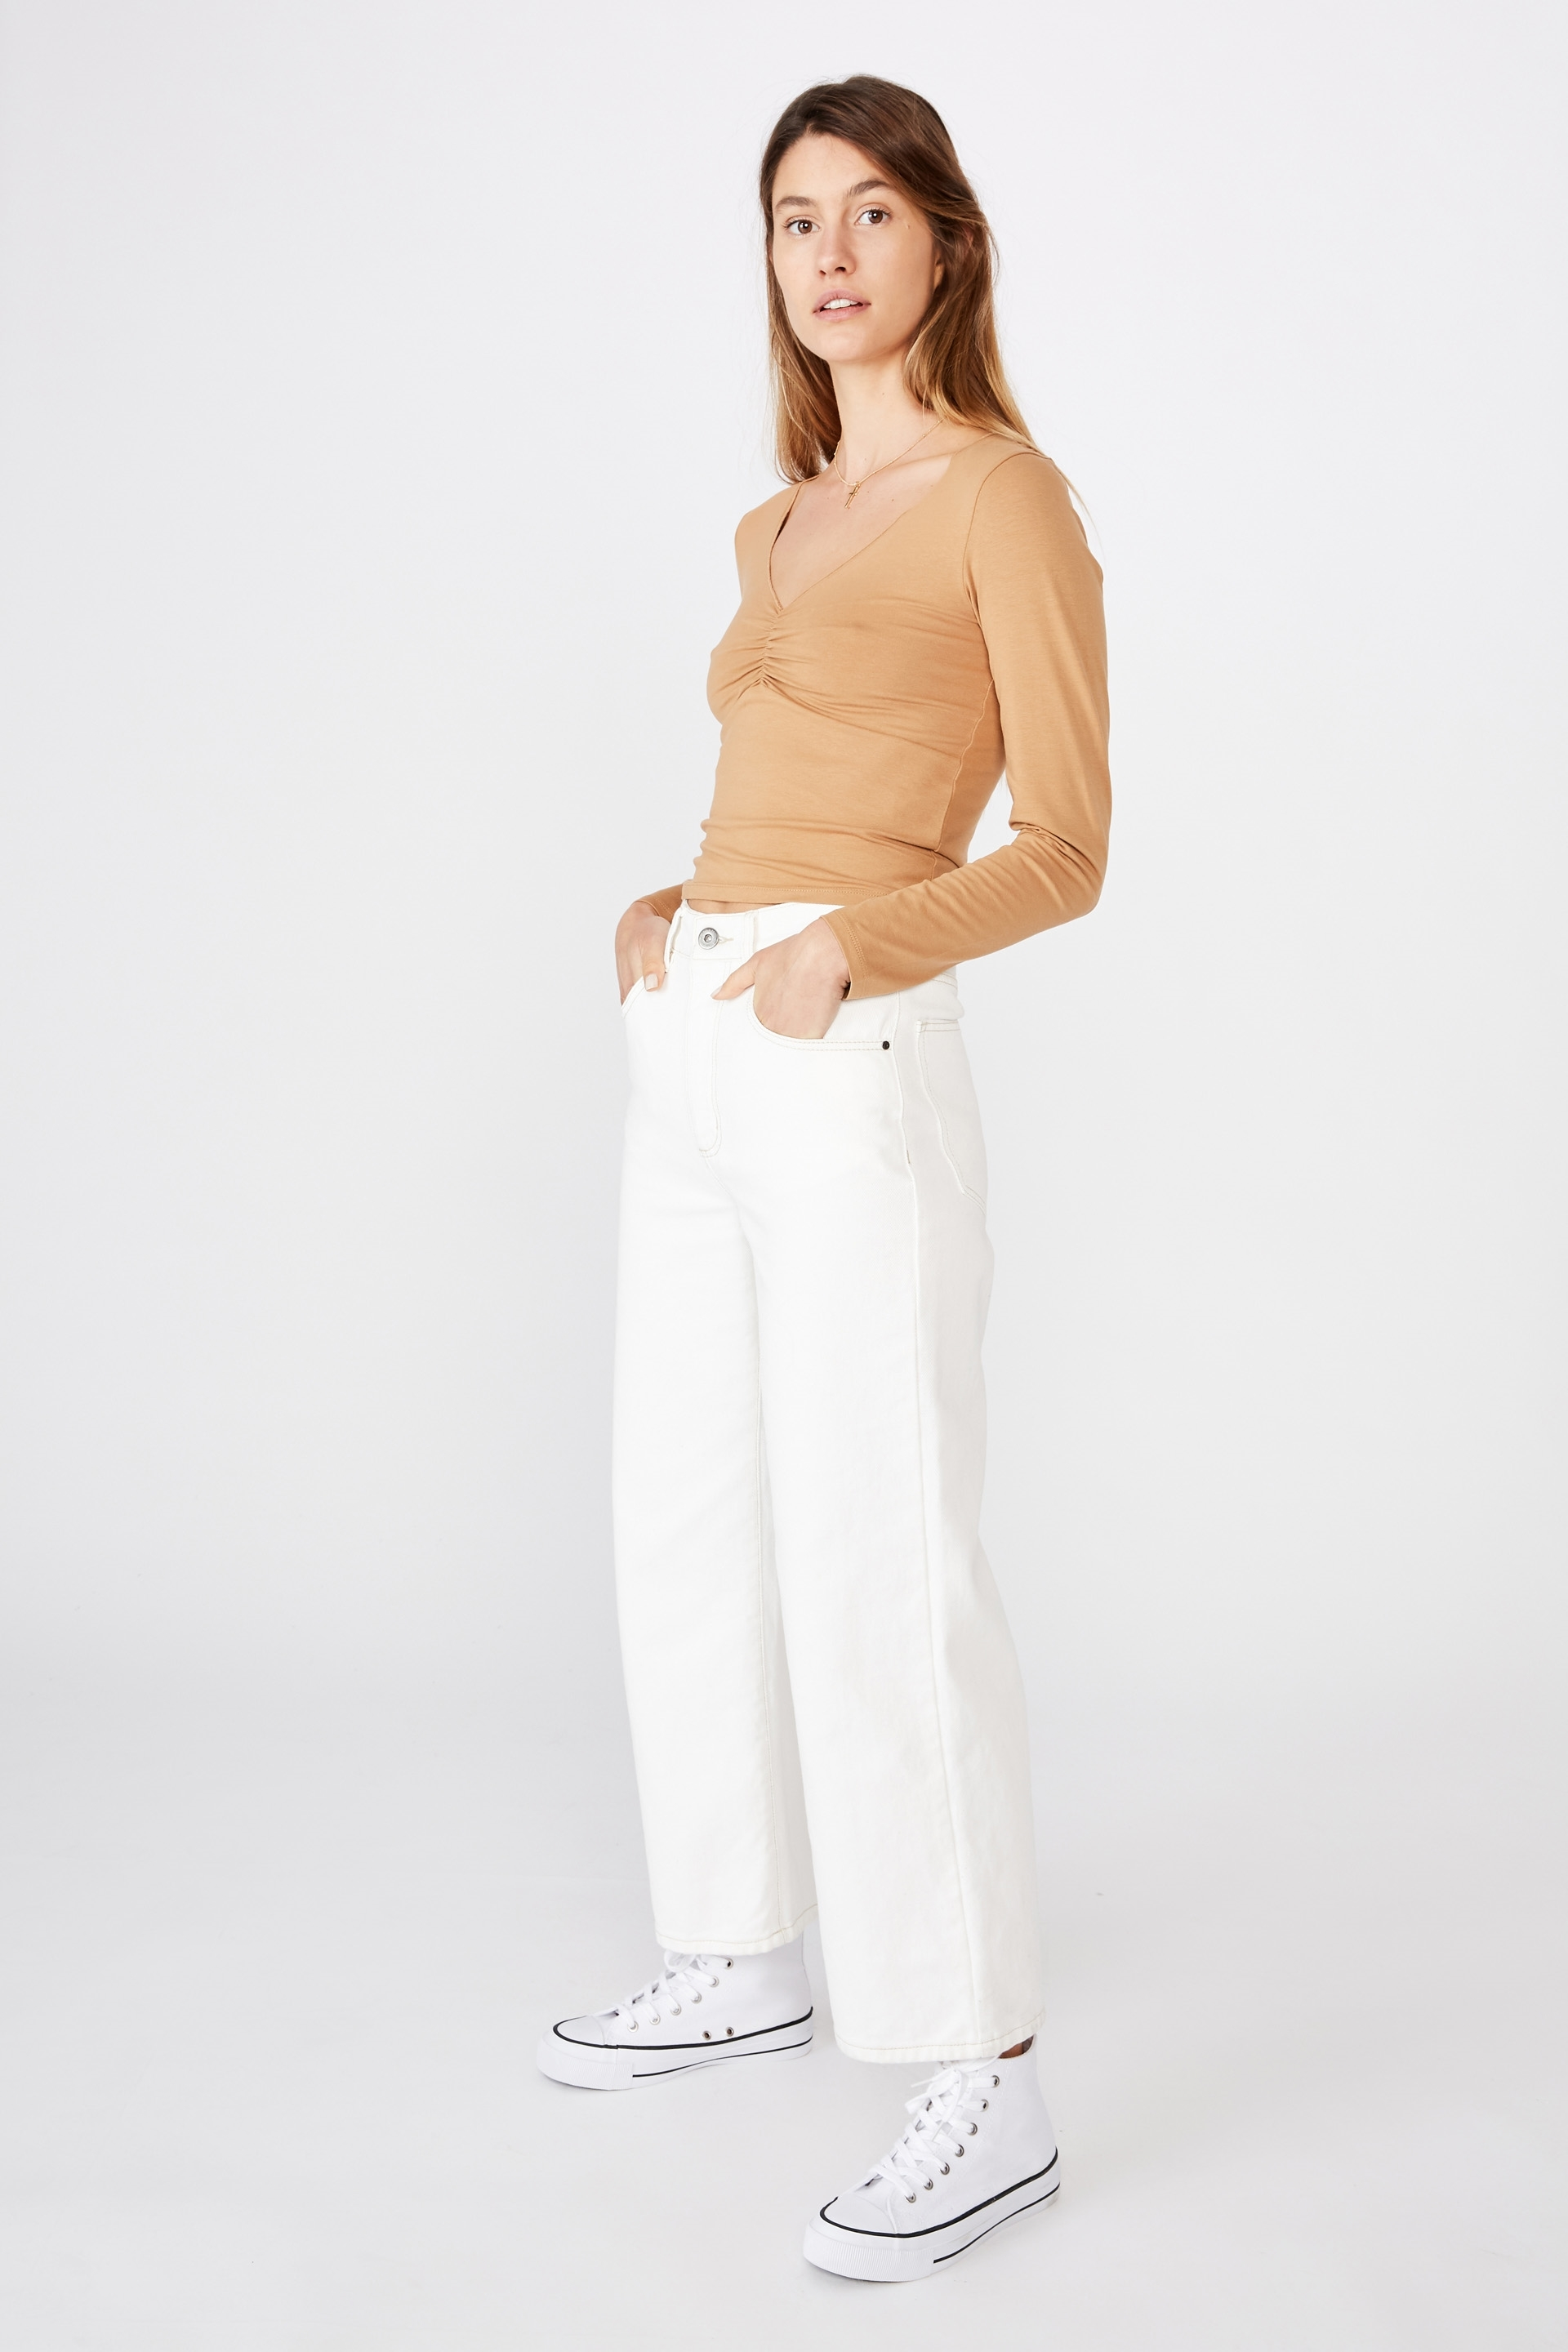 Cotton On Women - Mika Ruched Front Long Sleeve - Biscuit